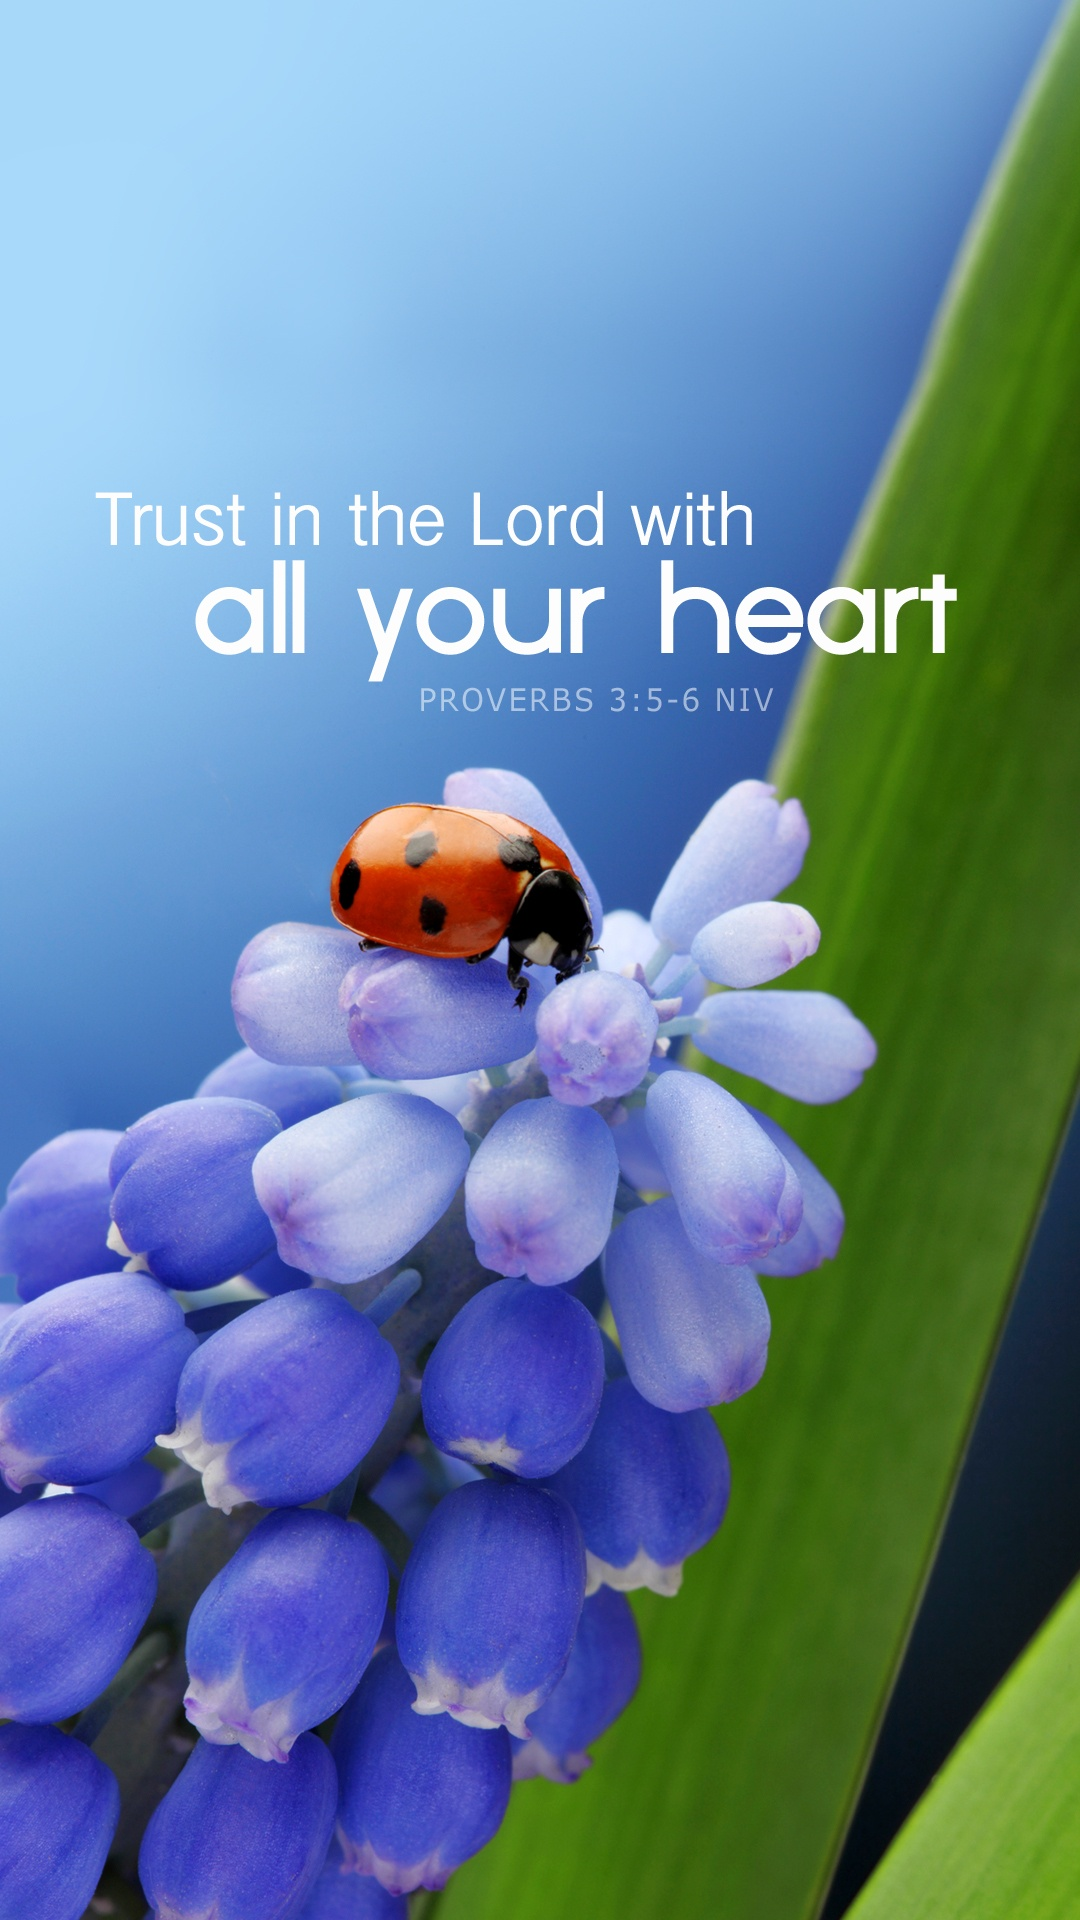 Ladybug Wallpaper Free - Trust In The Lord With All Your Heart Mobile , HD Wallpaper & Backgrounds